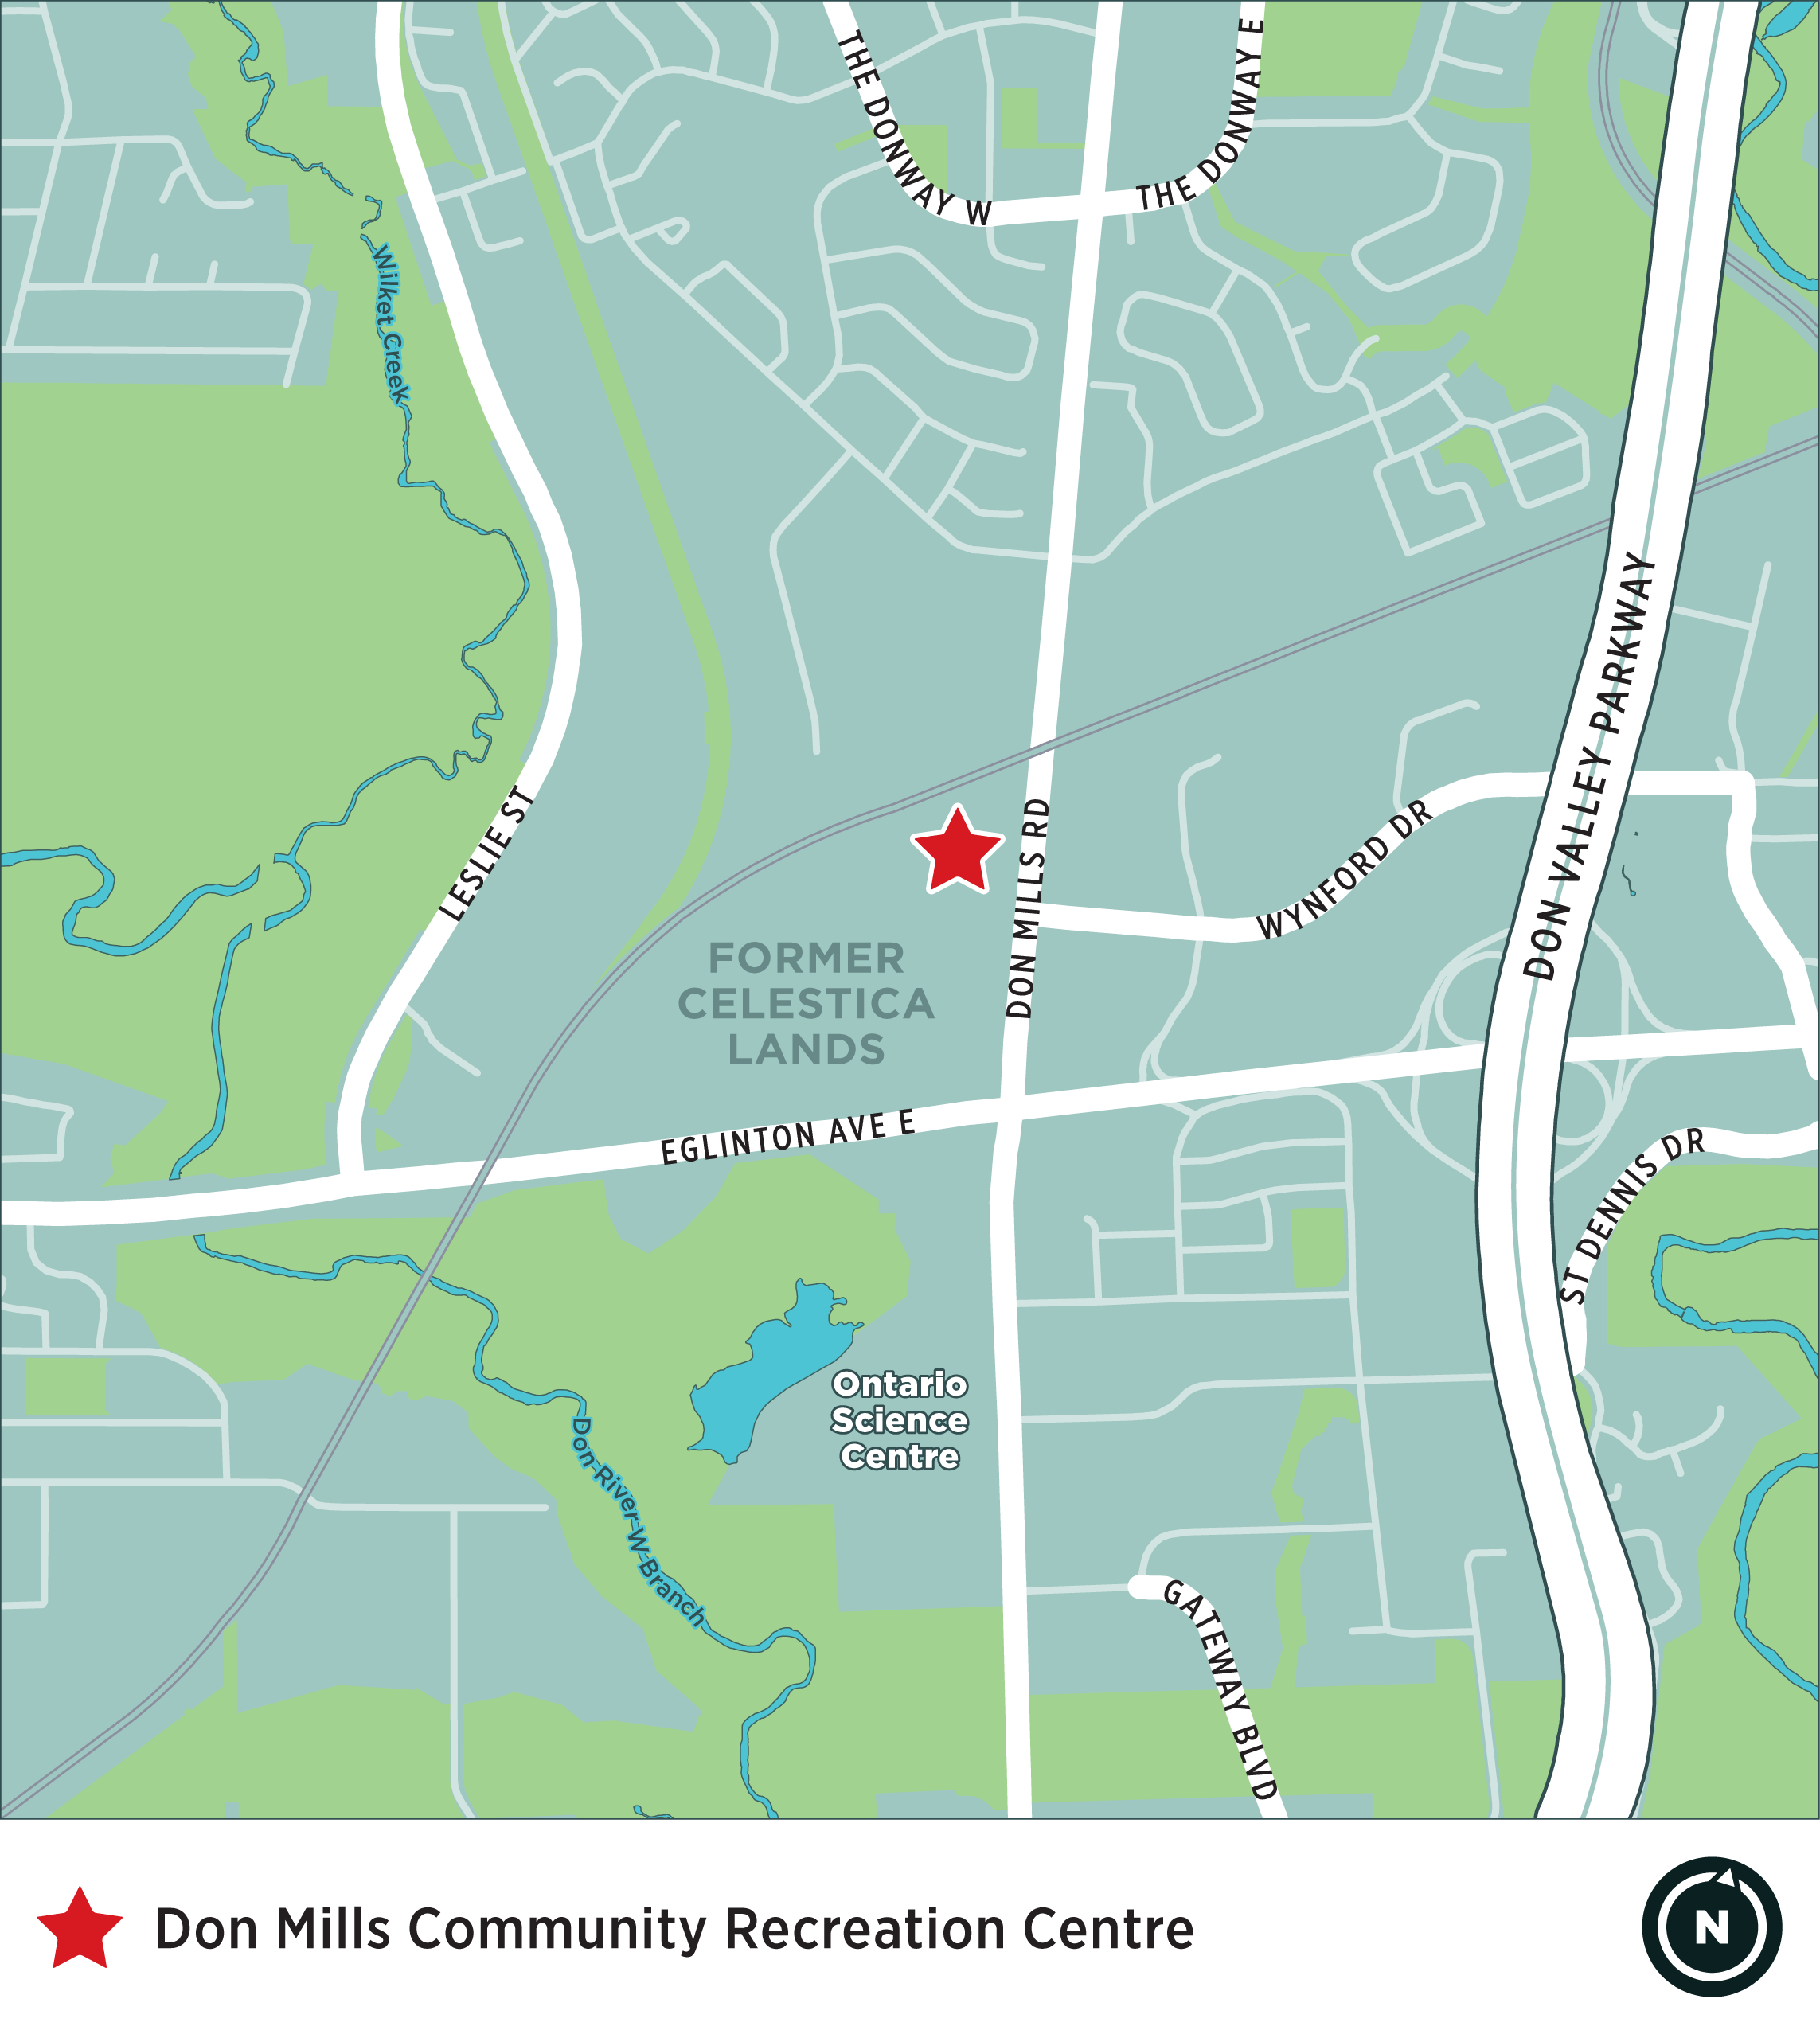 This image shows a map of the area surrounding the intersection of Eglinton Avenue East and Don Mills Road. A red star indicates the location of the future Don Mills CRC, just north of Wynford Drive on the west side of Don Mills Road.